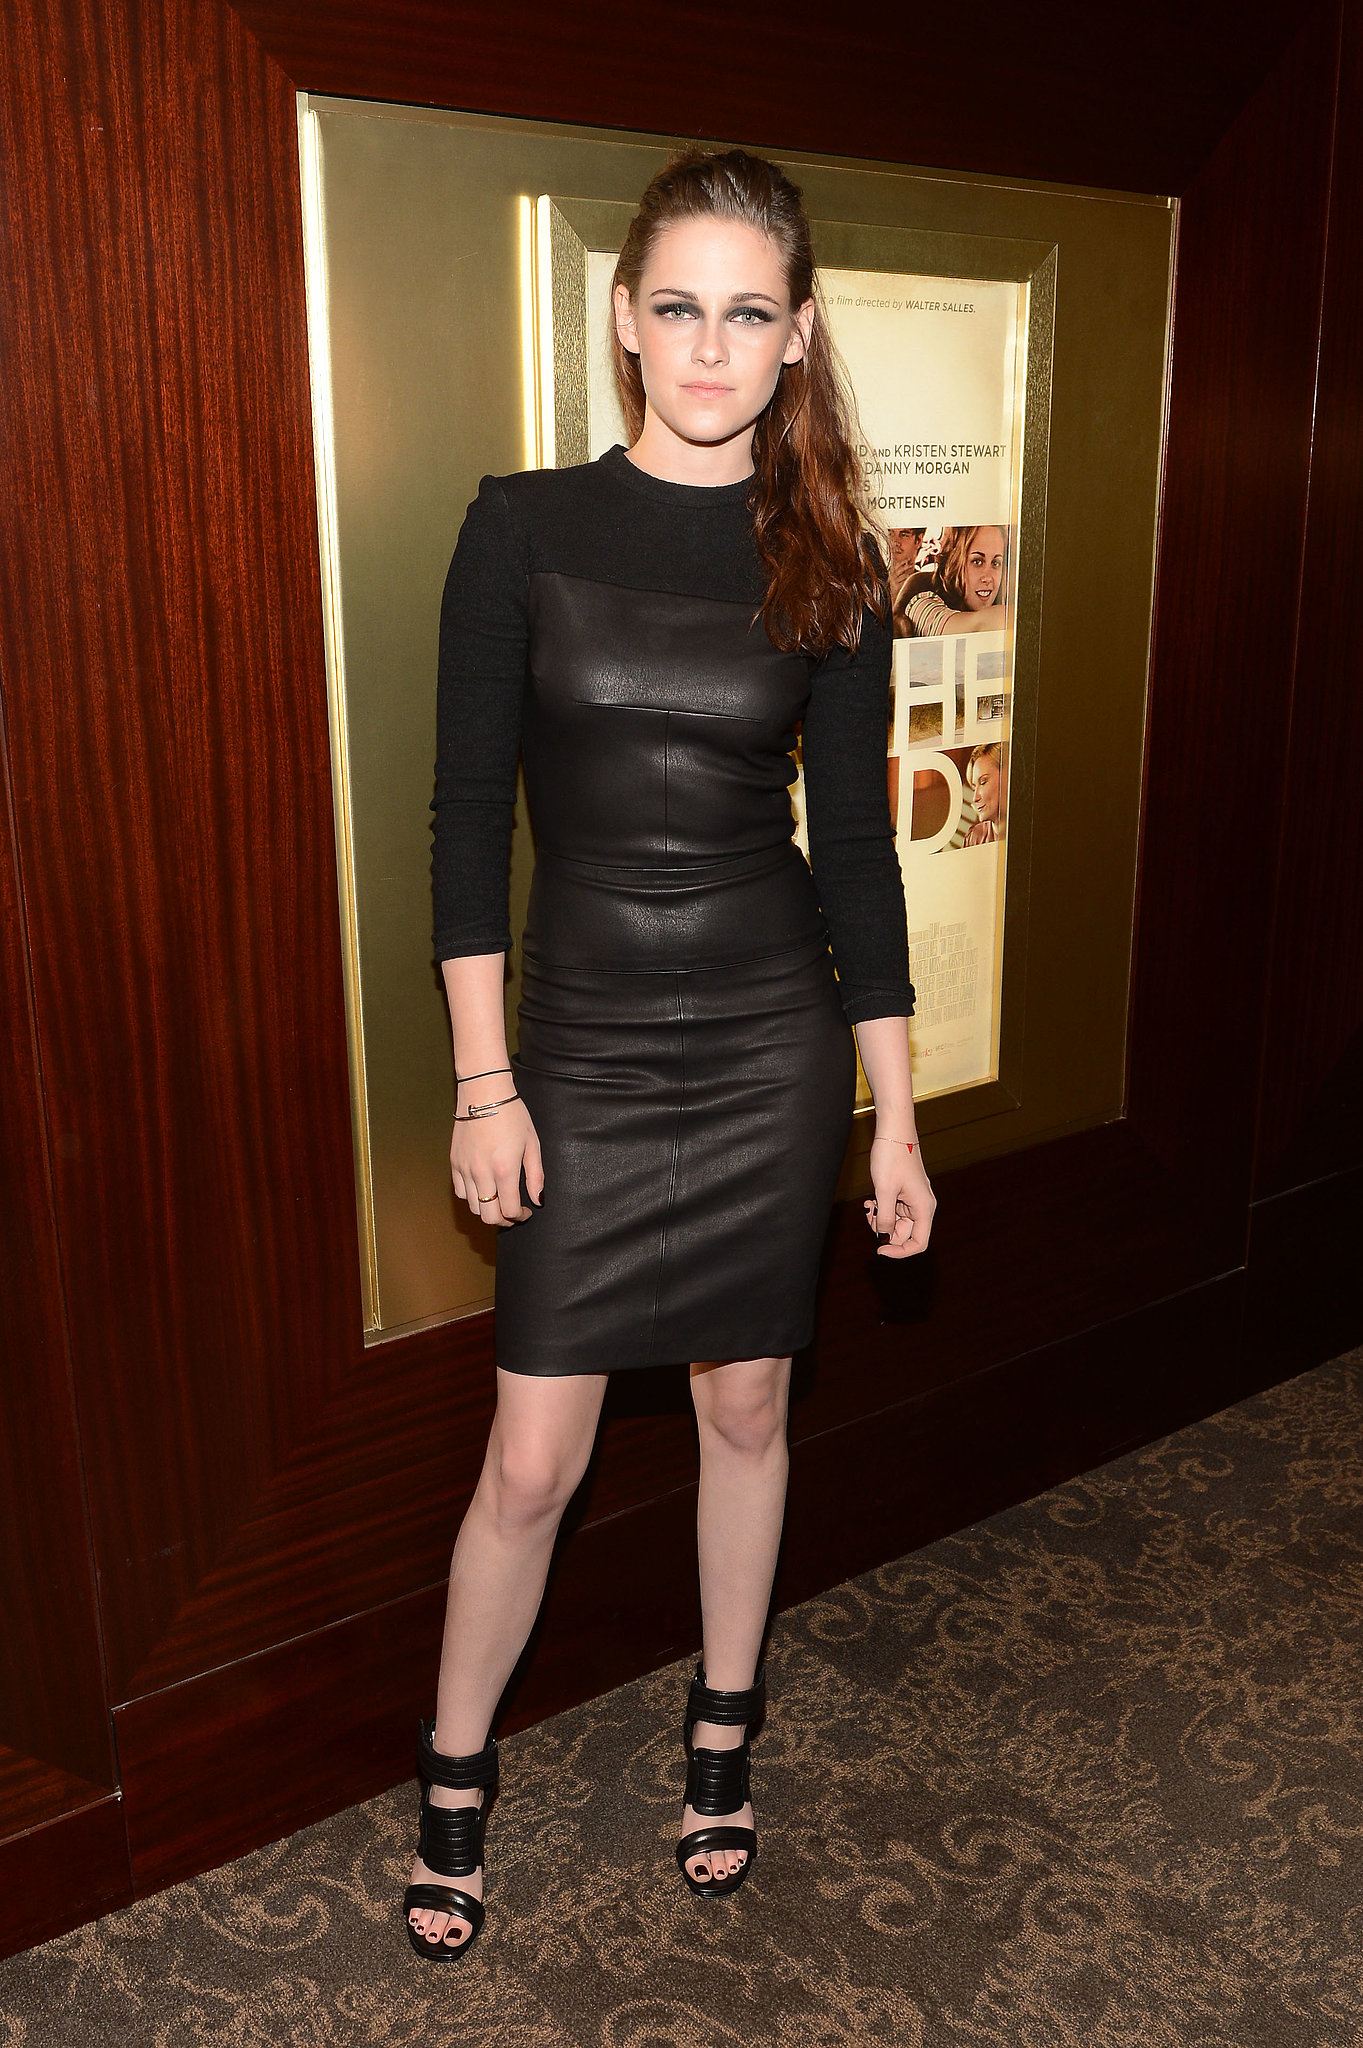 The actress continued her fashion roll in an elegantly edgy A.L.C. wool and leather sheath dress at an On the Road screening in NYC in 2012. Stewart completed her enviable look with a pair of Barbara Bui cutout sandals and a few funky bangles.